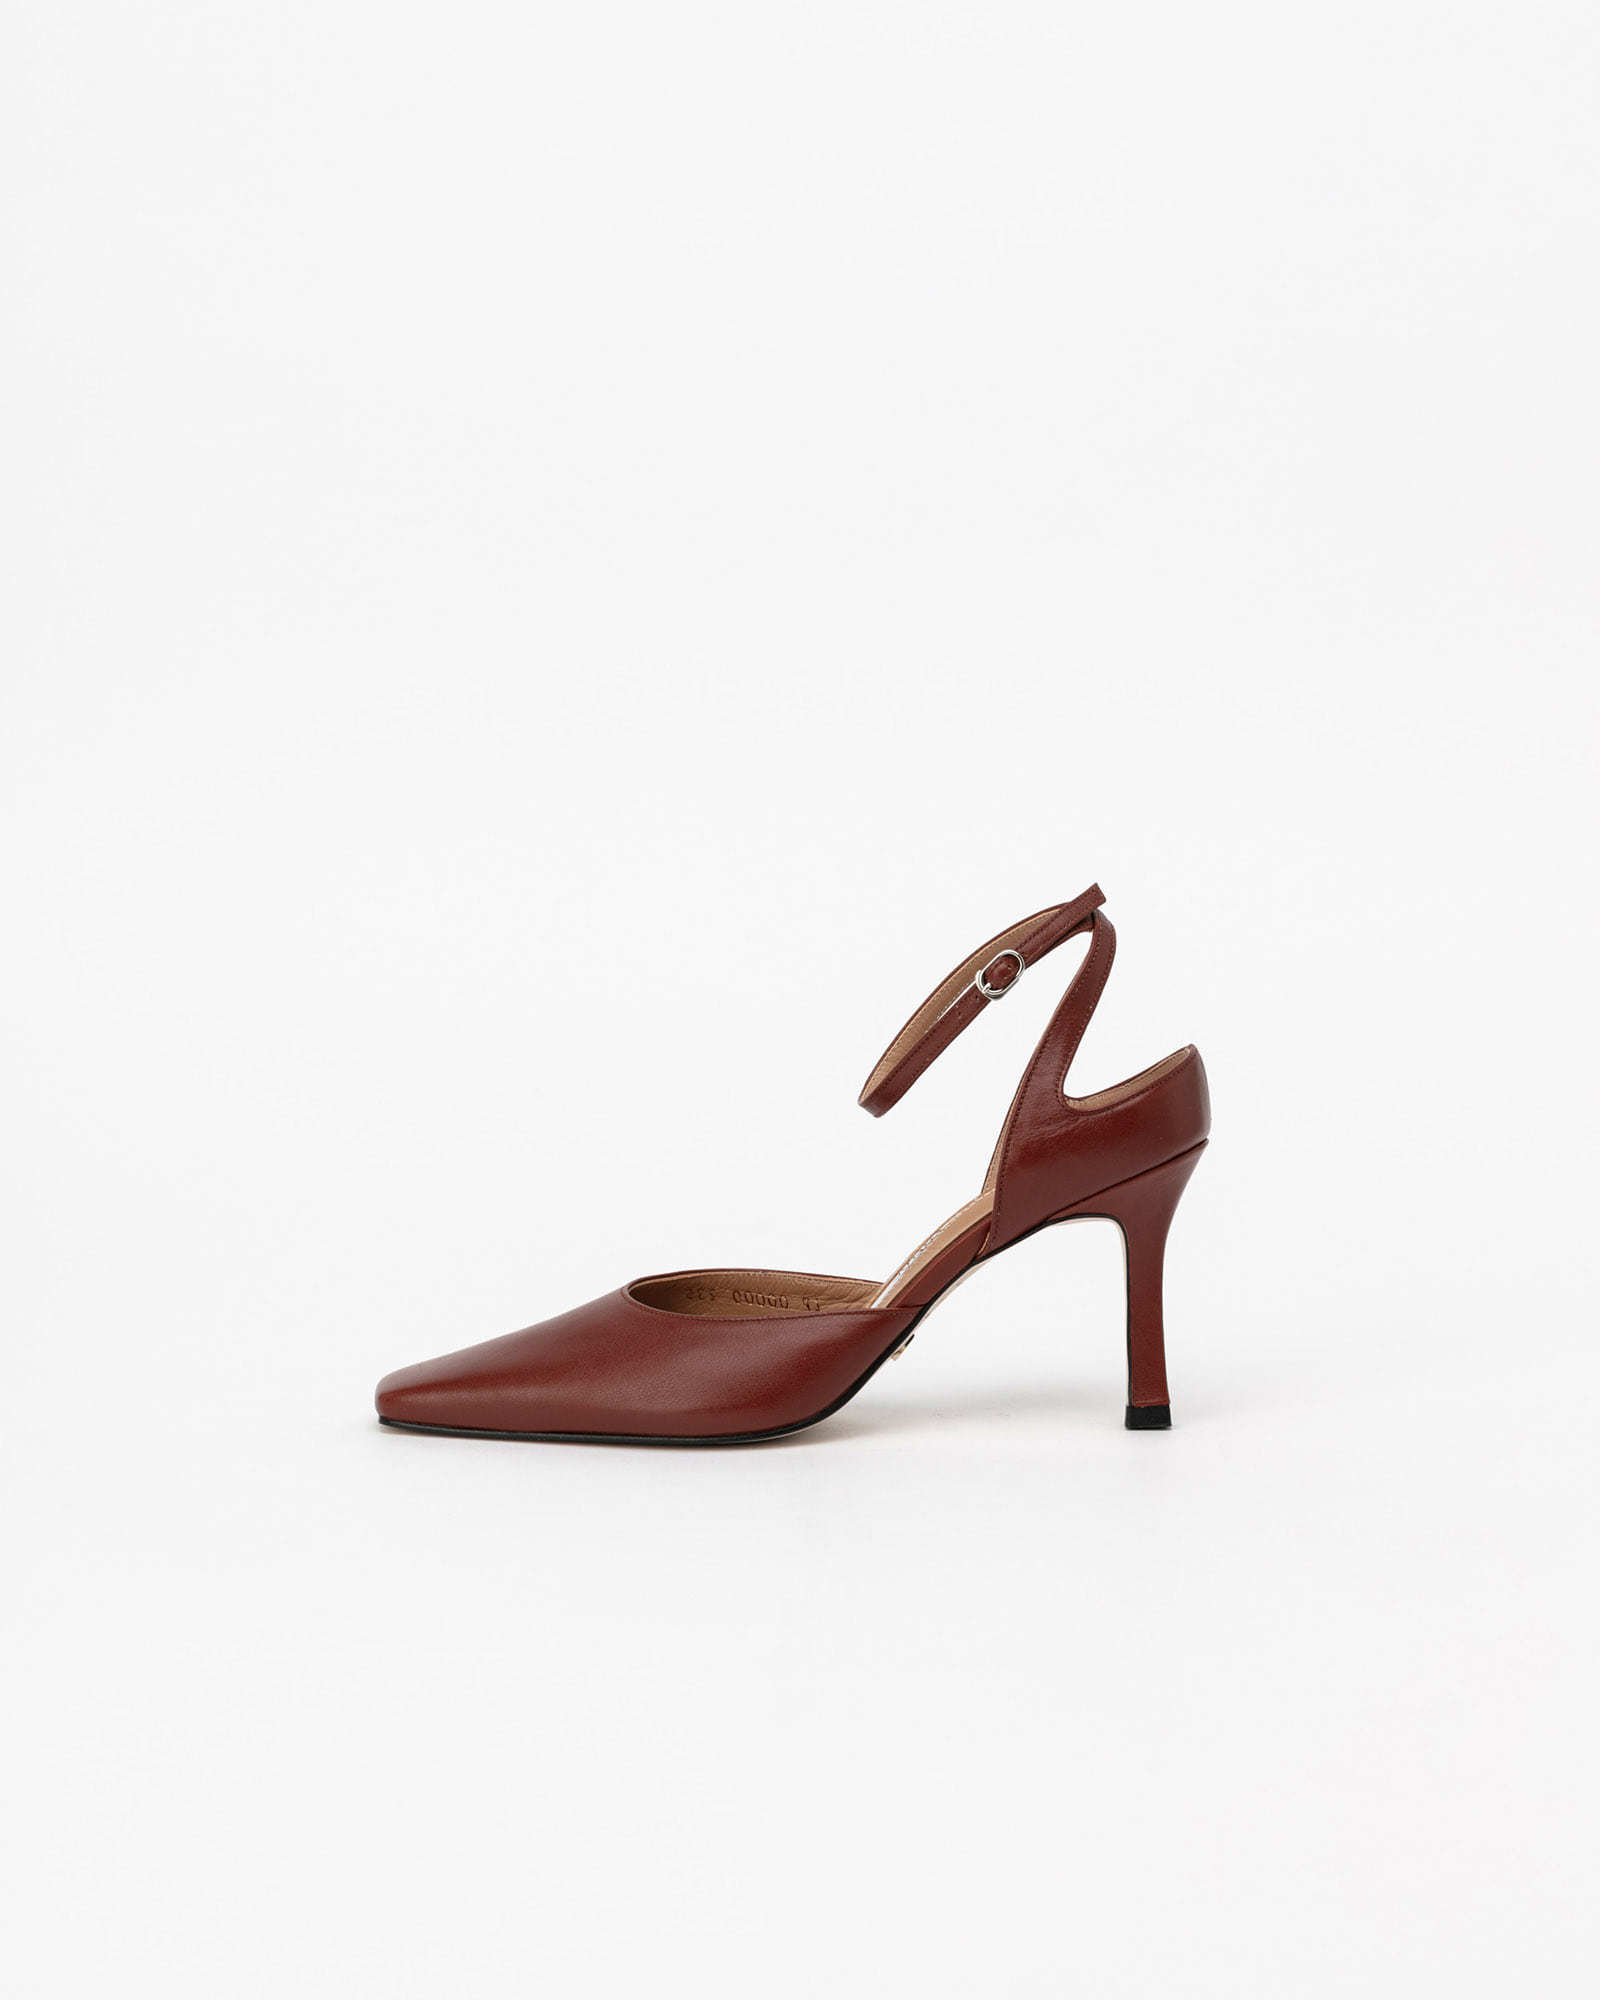 SeQuis Strap Pumps in Tender Brown